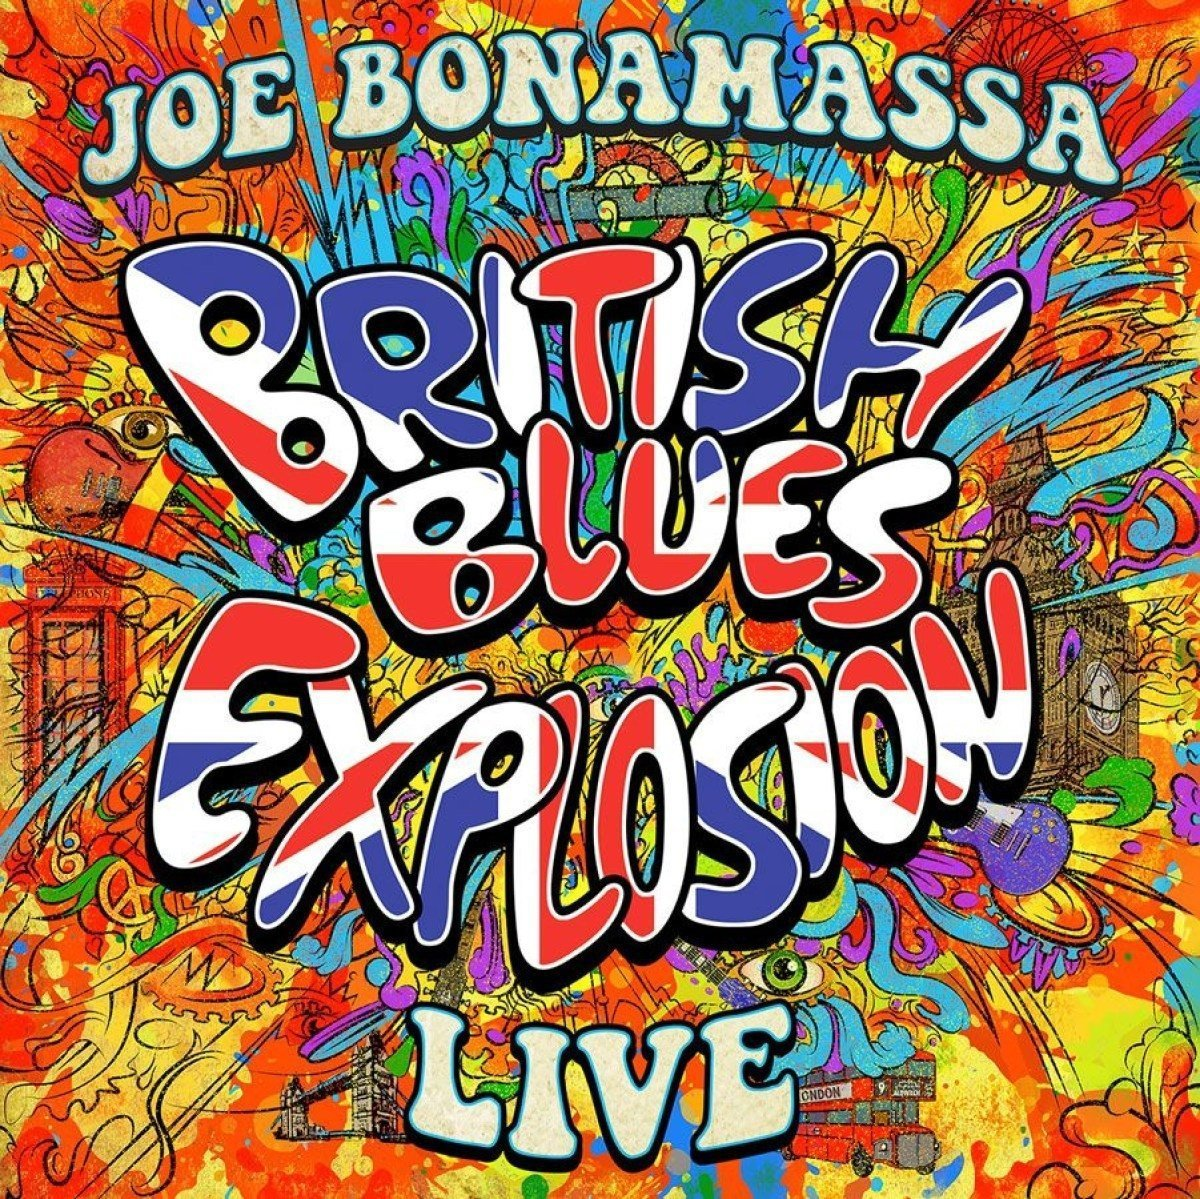 JOE BONAMASSA - British Blues Explosion Live cover